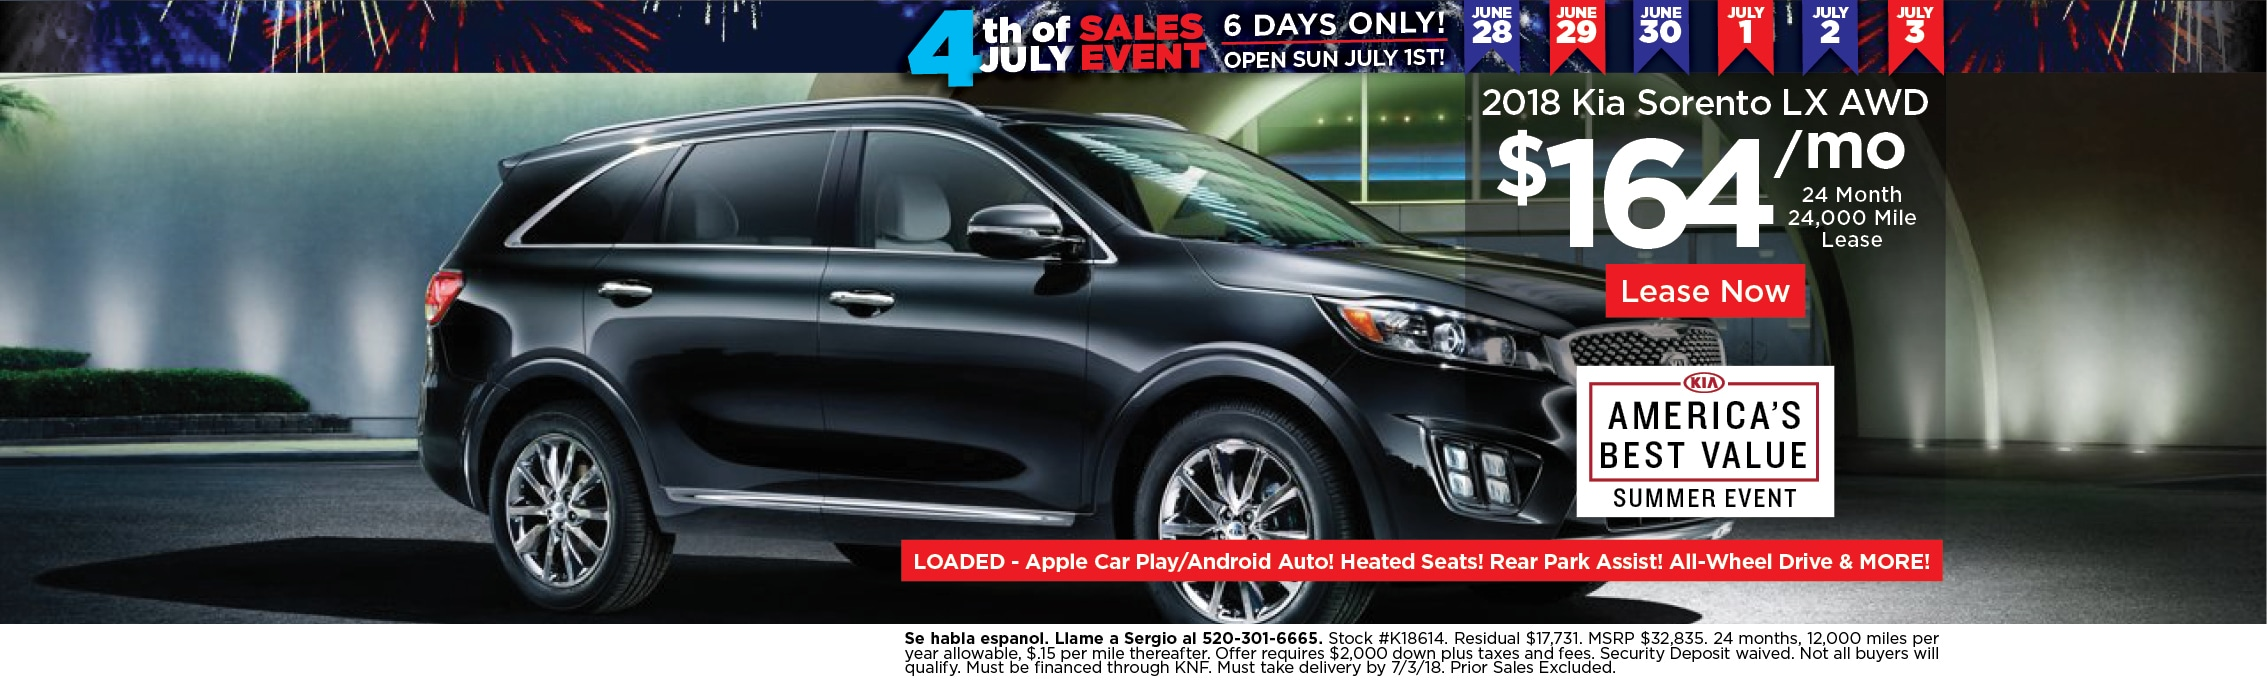 reports buying consumer kia pros cons leasing car lease and sorento of guide pin